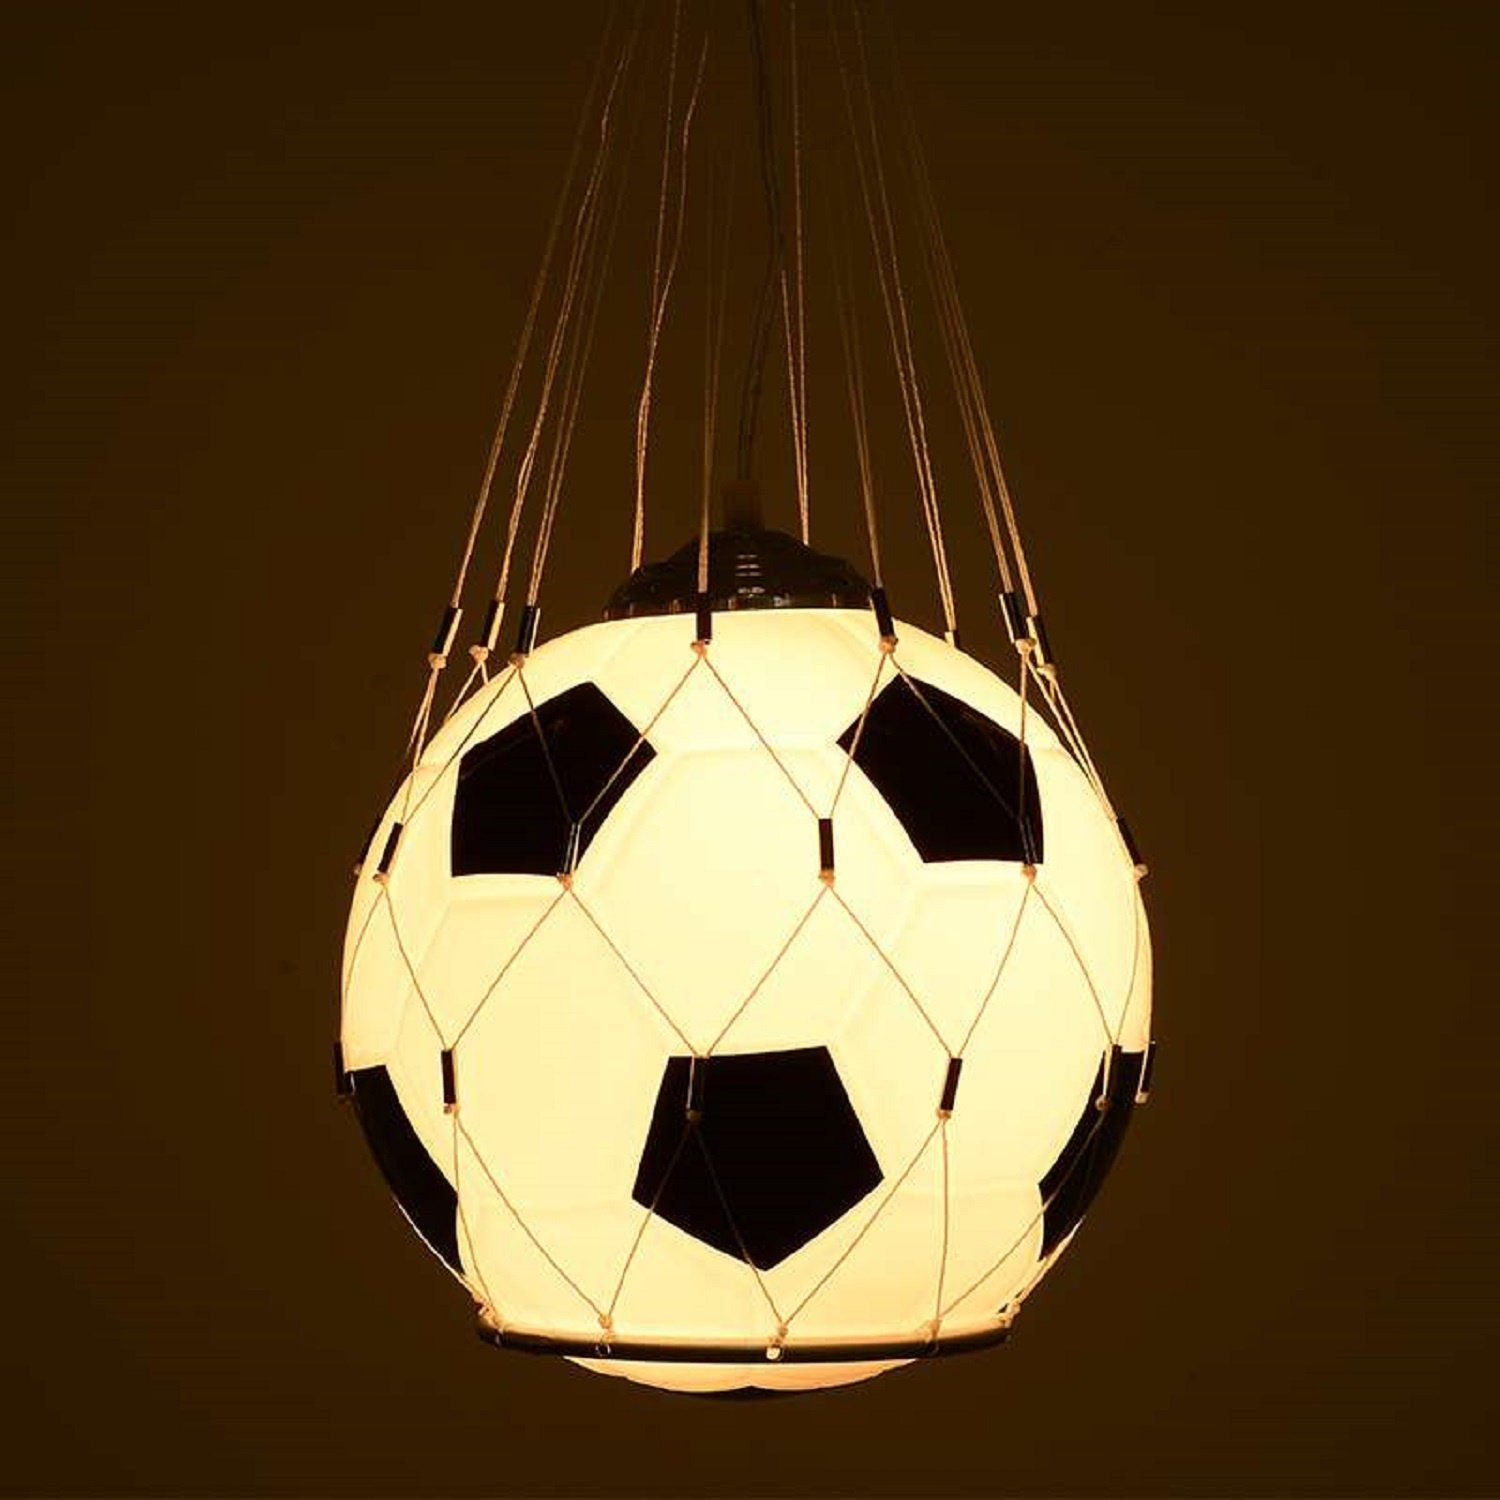 Waineg Single Head Children S Room Football Pendant Lamp Creative Bedroom Living Room Children S Room Glas Led Pendant Lights Football Lights Pendant Lighting